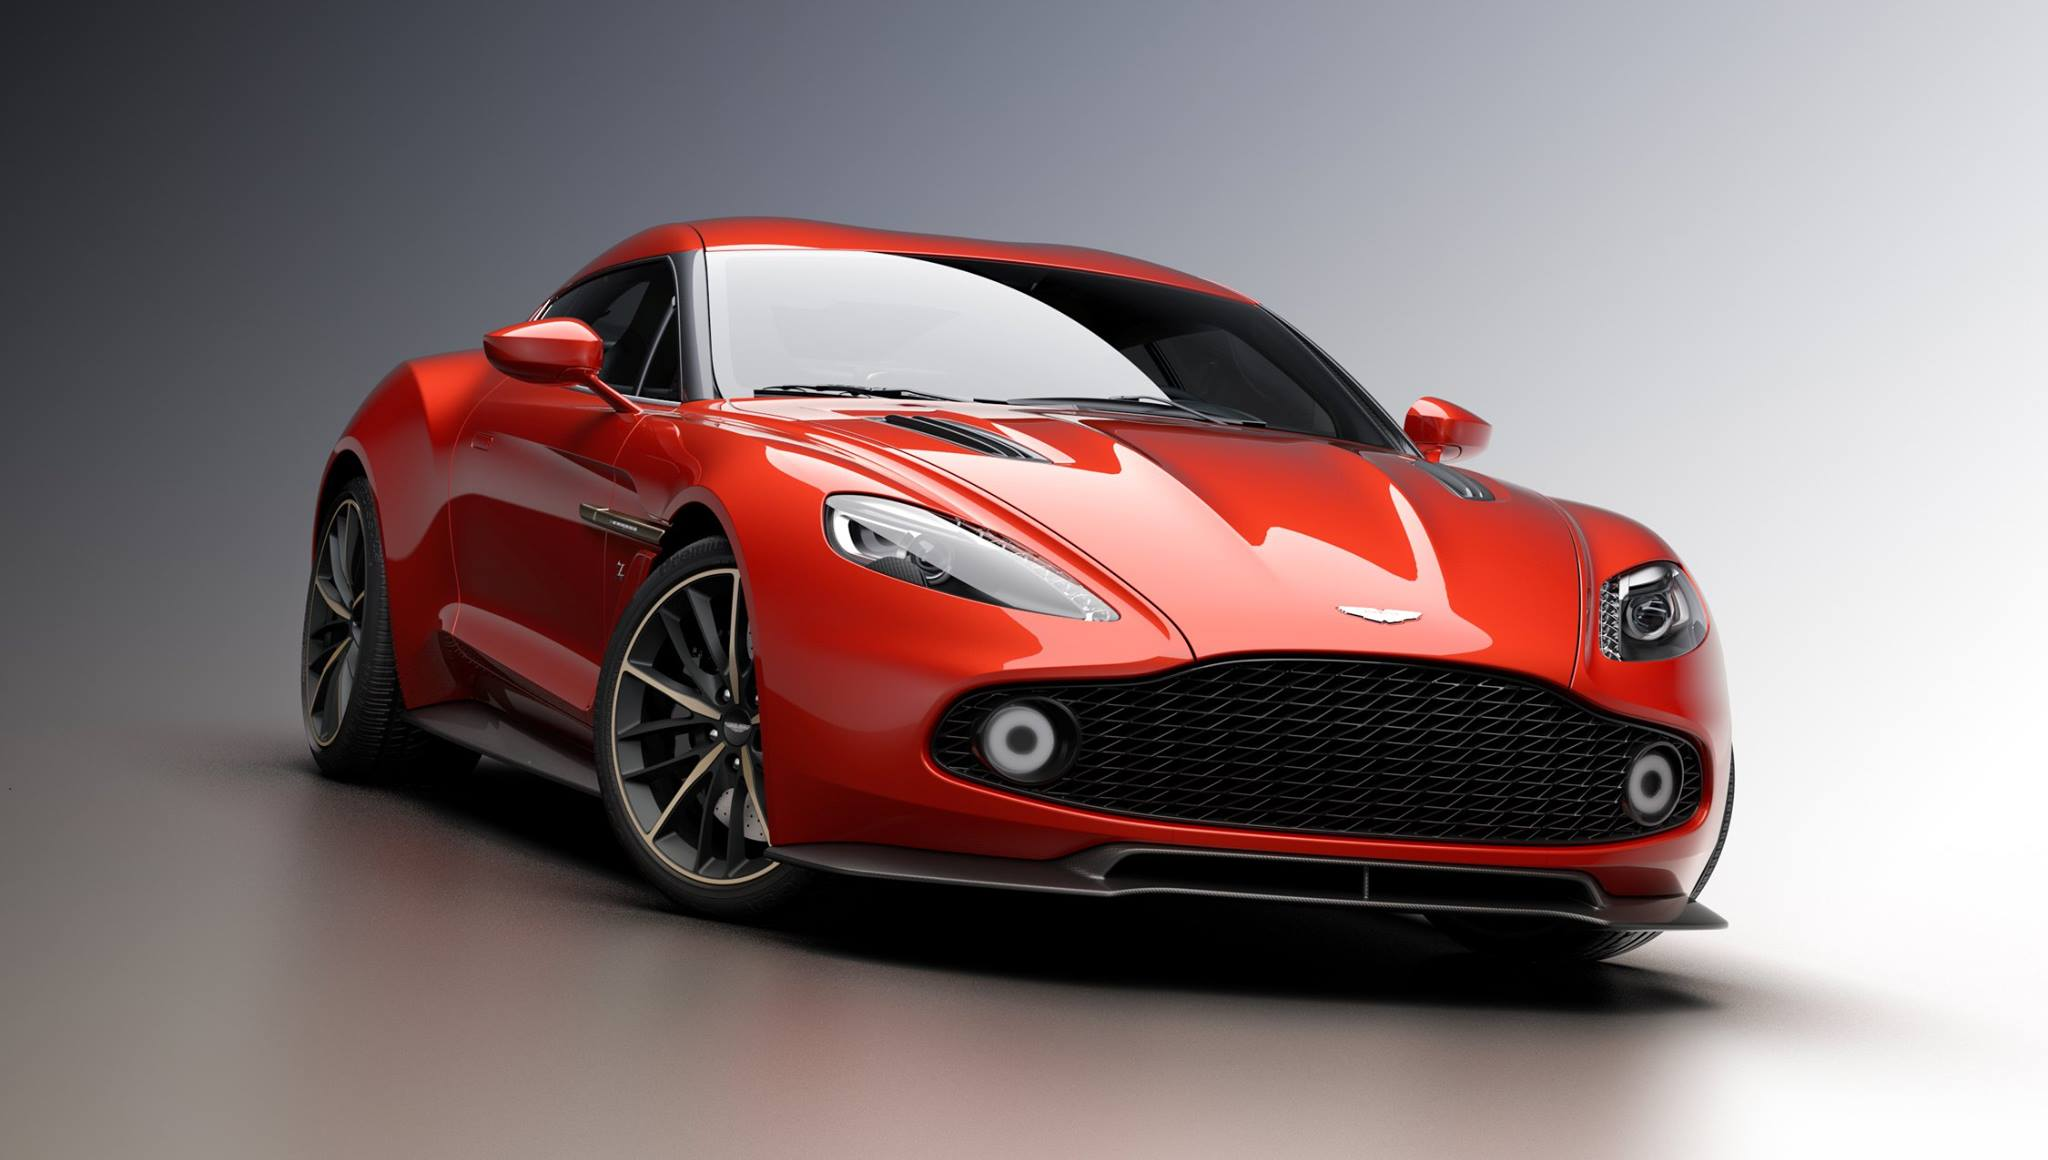 Aston Martin Vanquish Zagato HQ wallpapers